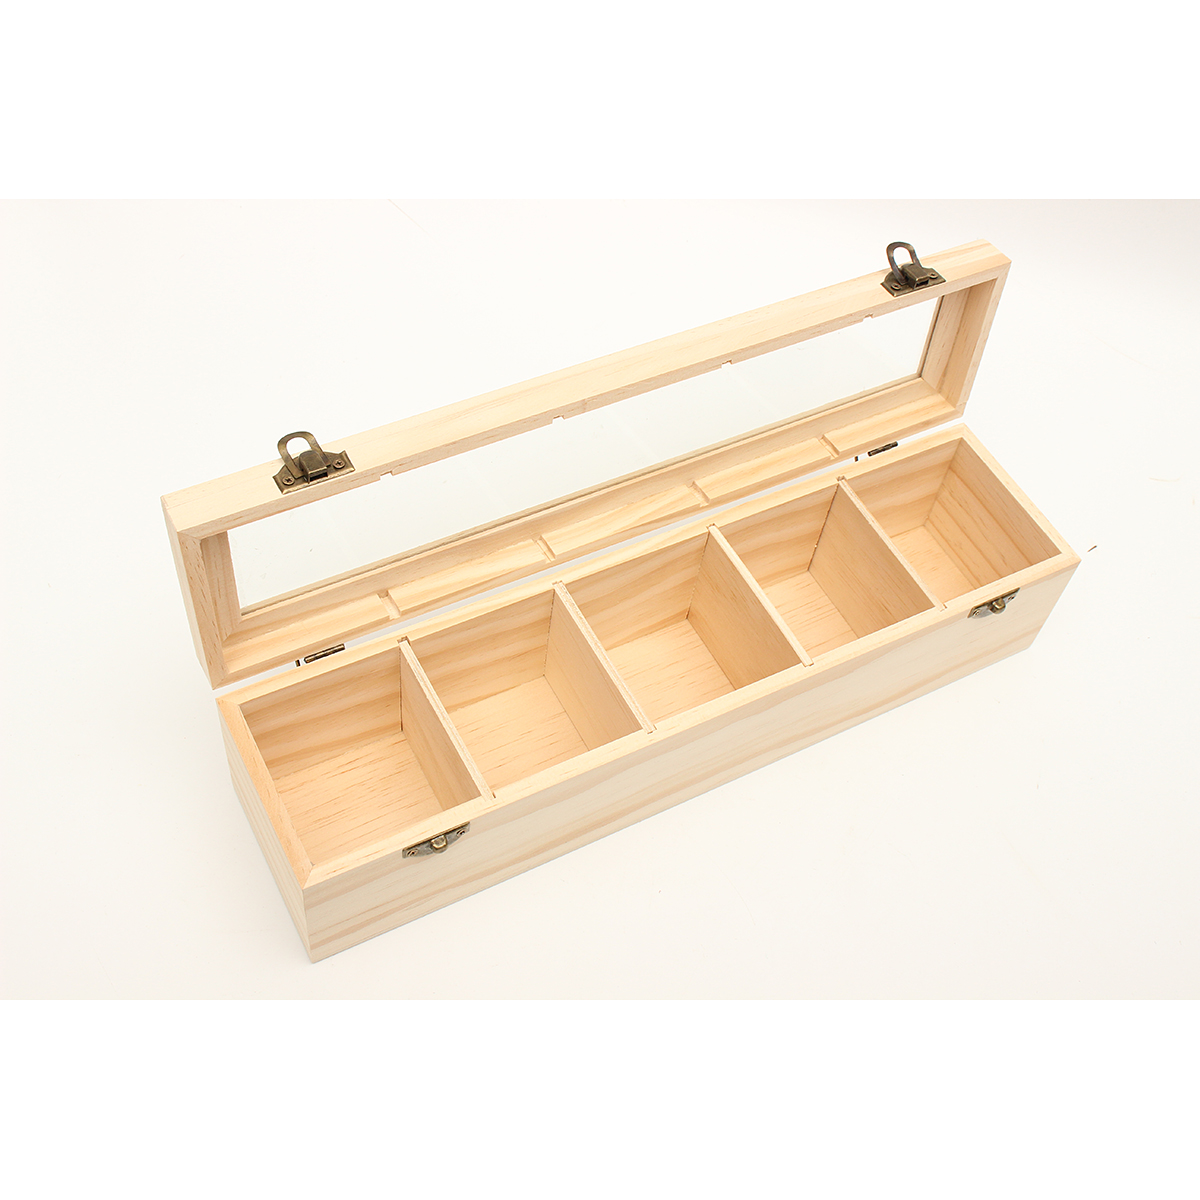 5 Compartments Plain Wooden Tea Box Bag Caddy Storage Display Container With Glass Lid